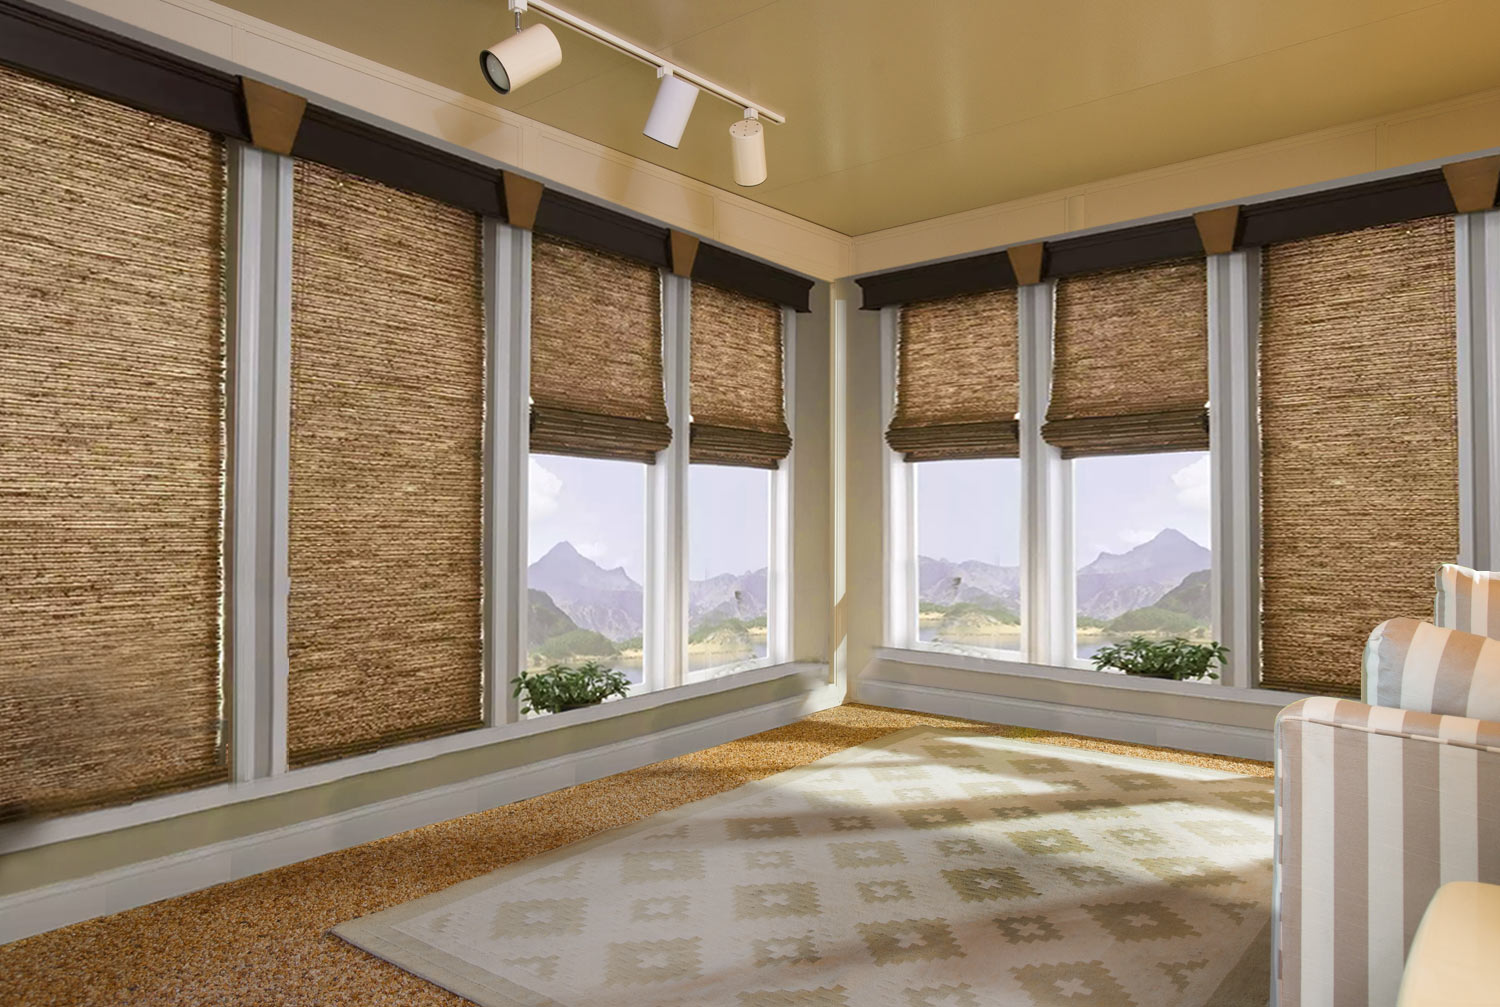 Easy ways to decorate your room with eco friendly window treatments. Easy way to decorate the room with eco friendly window treatments